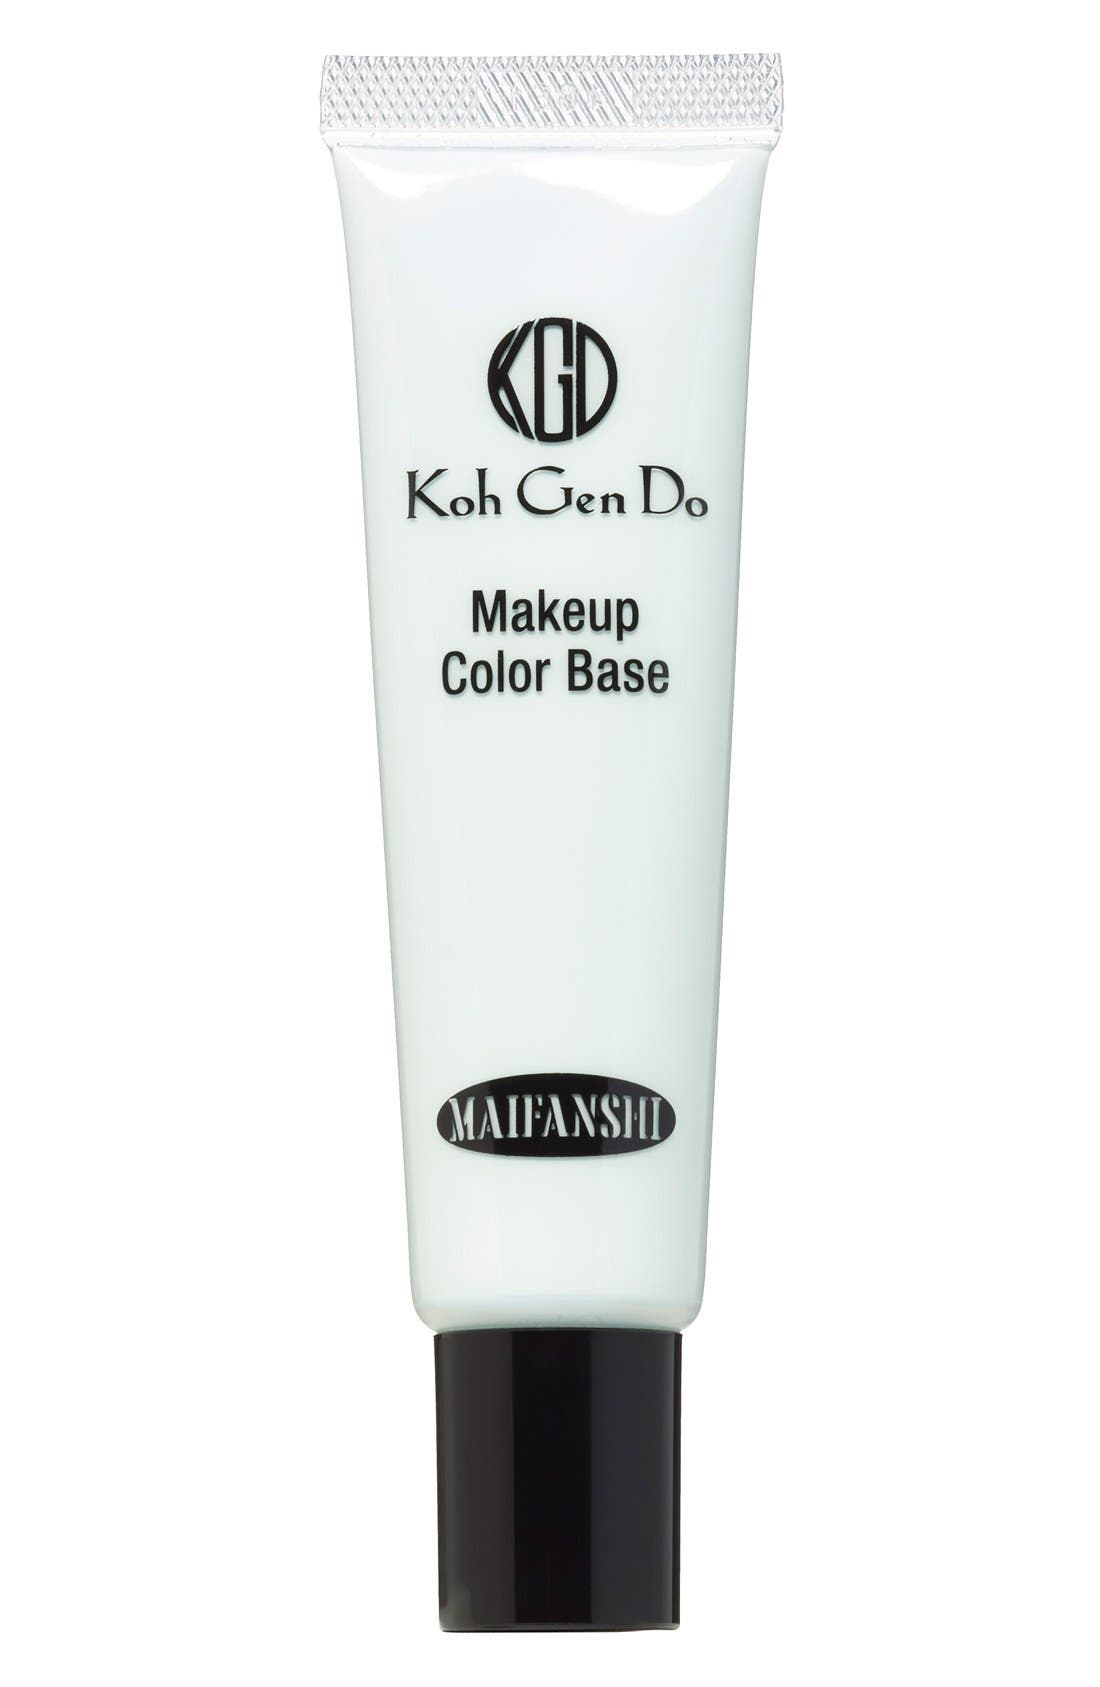 'Maifanshi - Pearl White' Makeup Color Base,                             Main thumbnail 1, color,